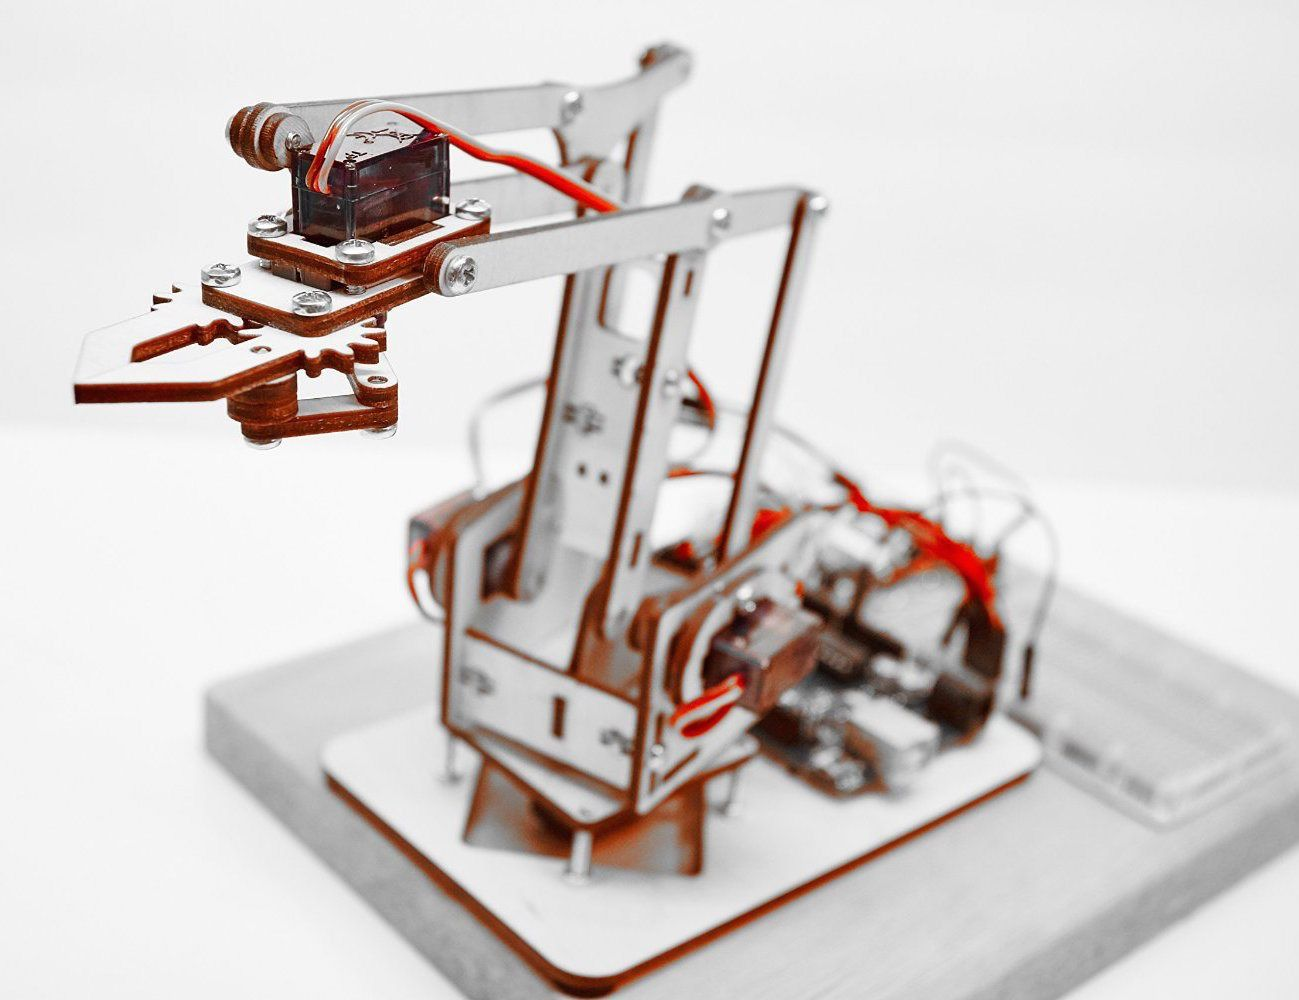 Get introduced to industrial robotics and motion control concepts